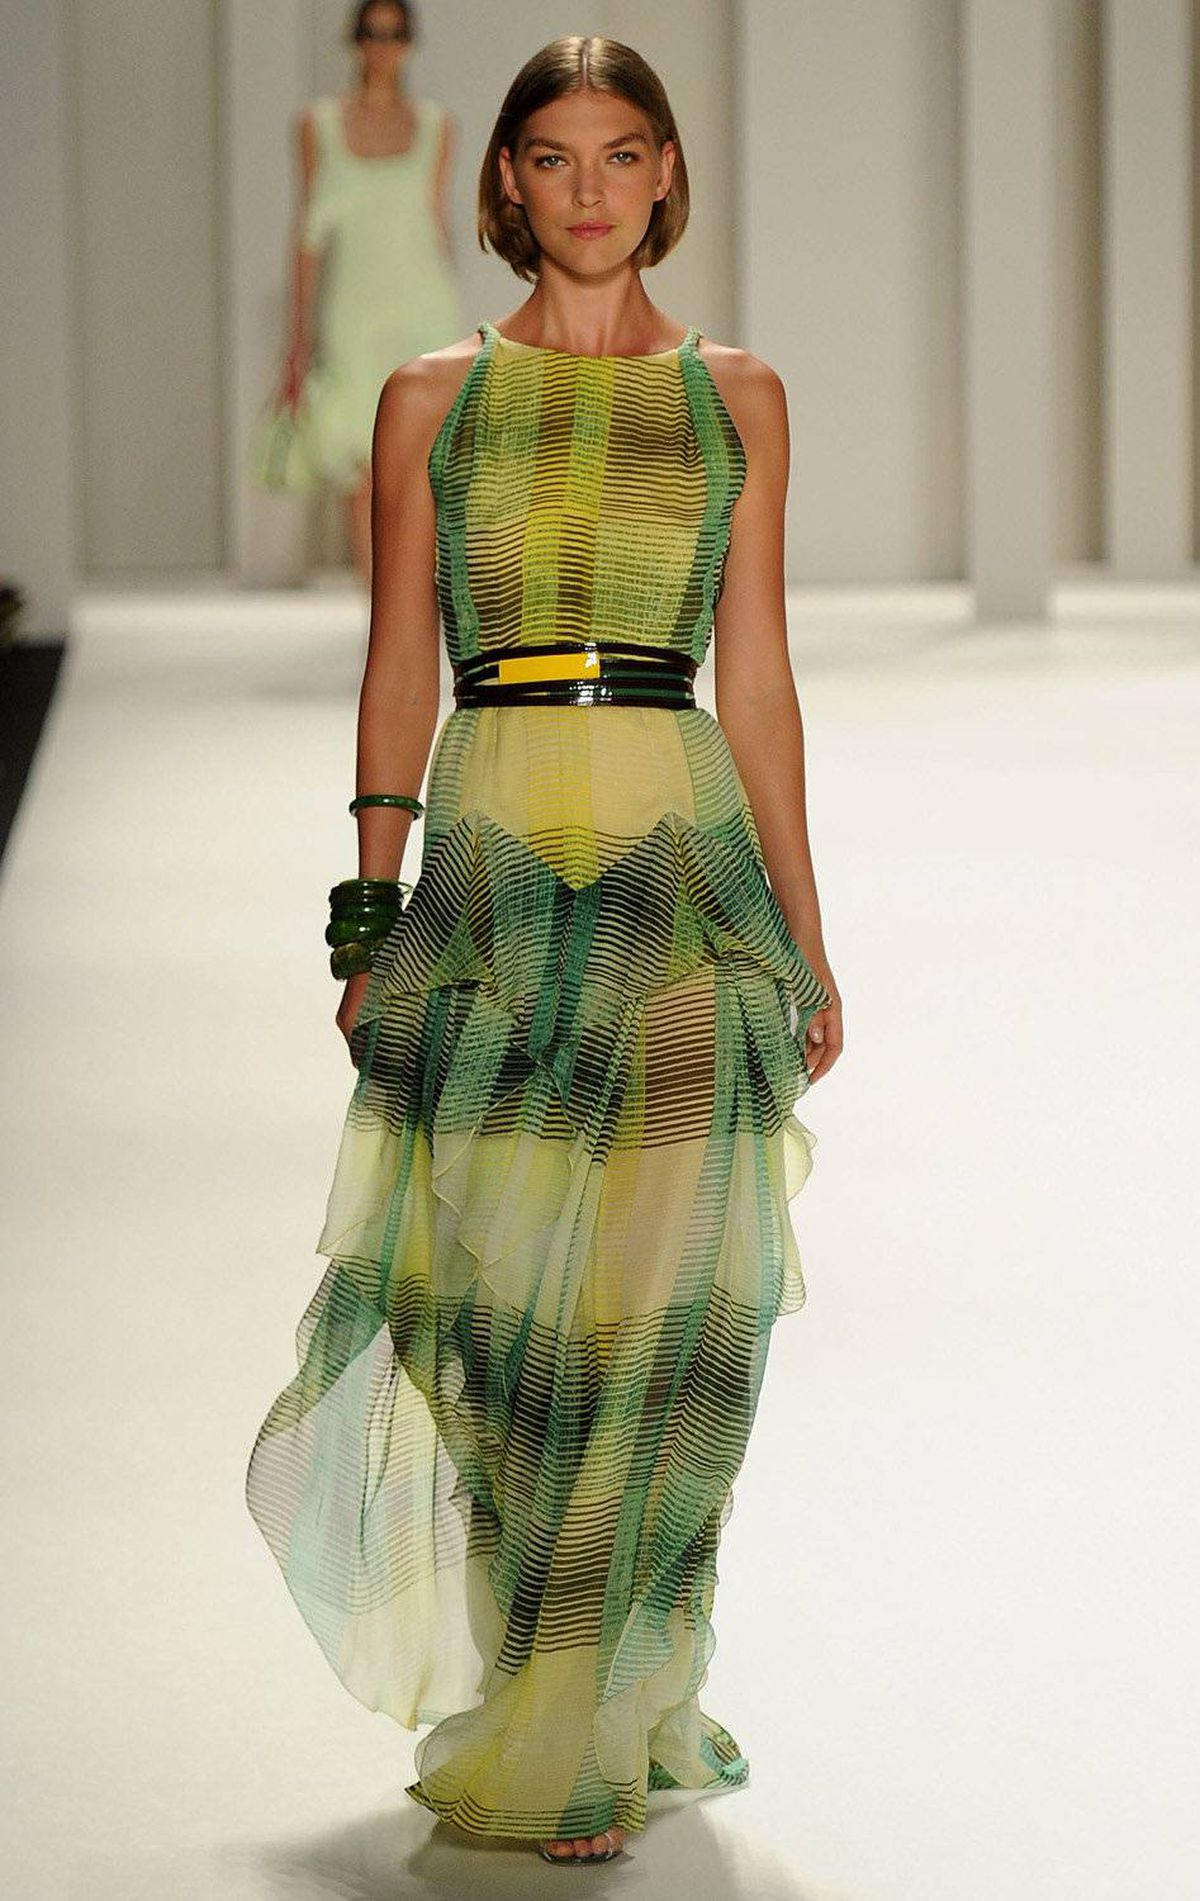 A model walks the runway at the Carolina Herrera Spring 2012 fashion show during Mercedes-Benz Fashion Week at the Theater at Lincoln Center on September 12, 2011 in New York.